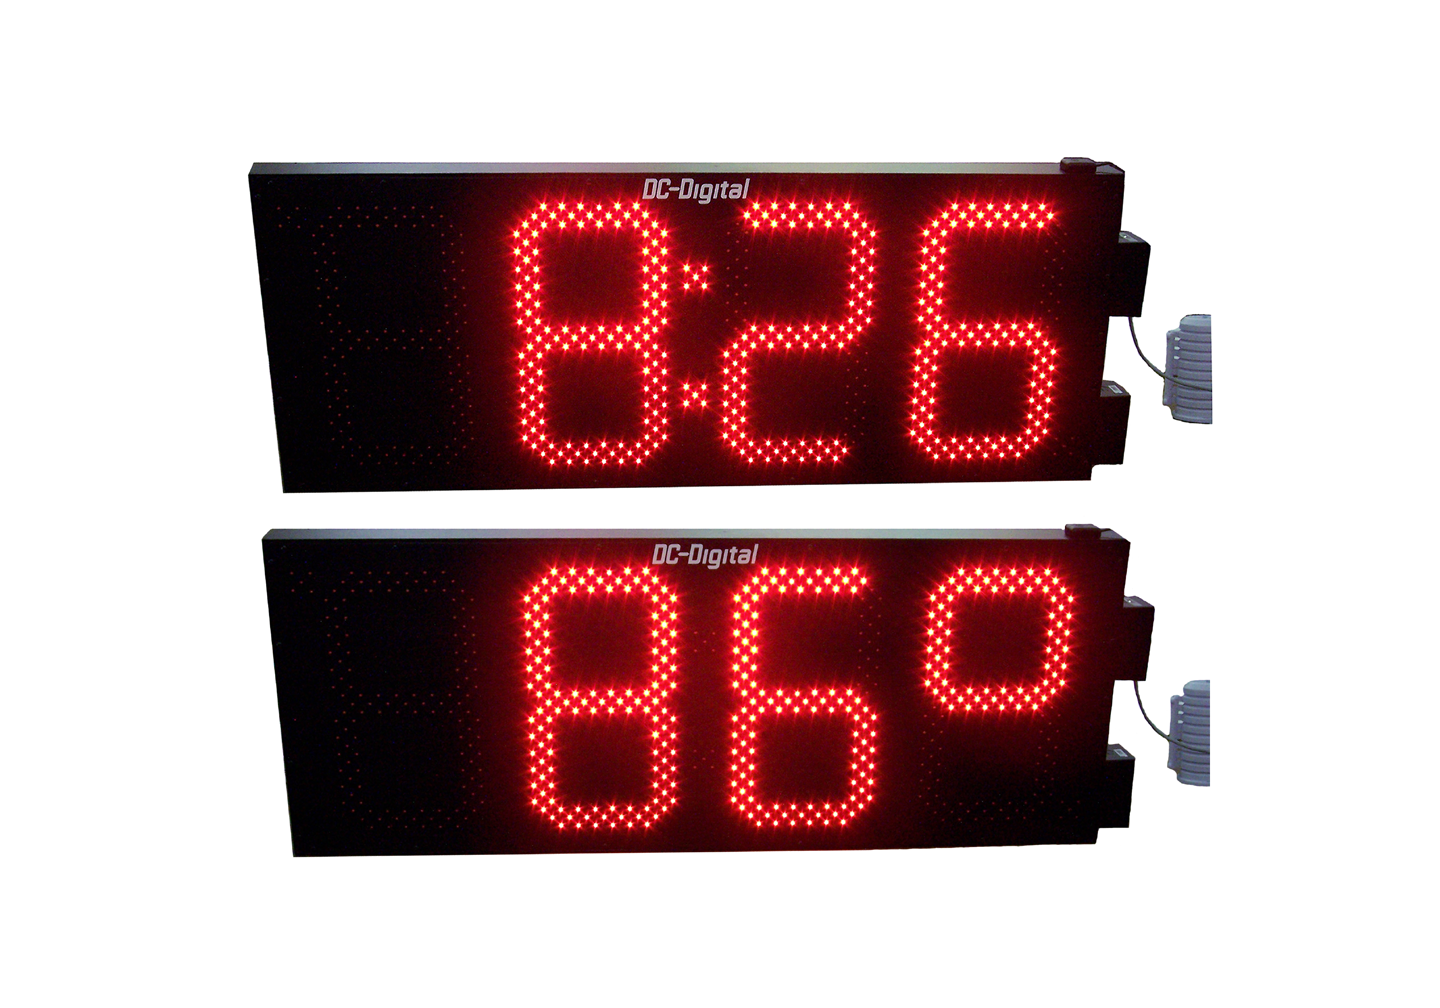 15 Inch LED Digital GPS Atomic Time and Temperature Display